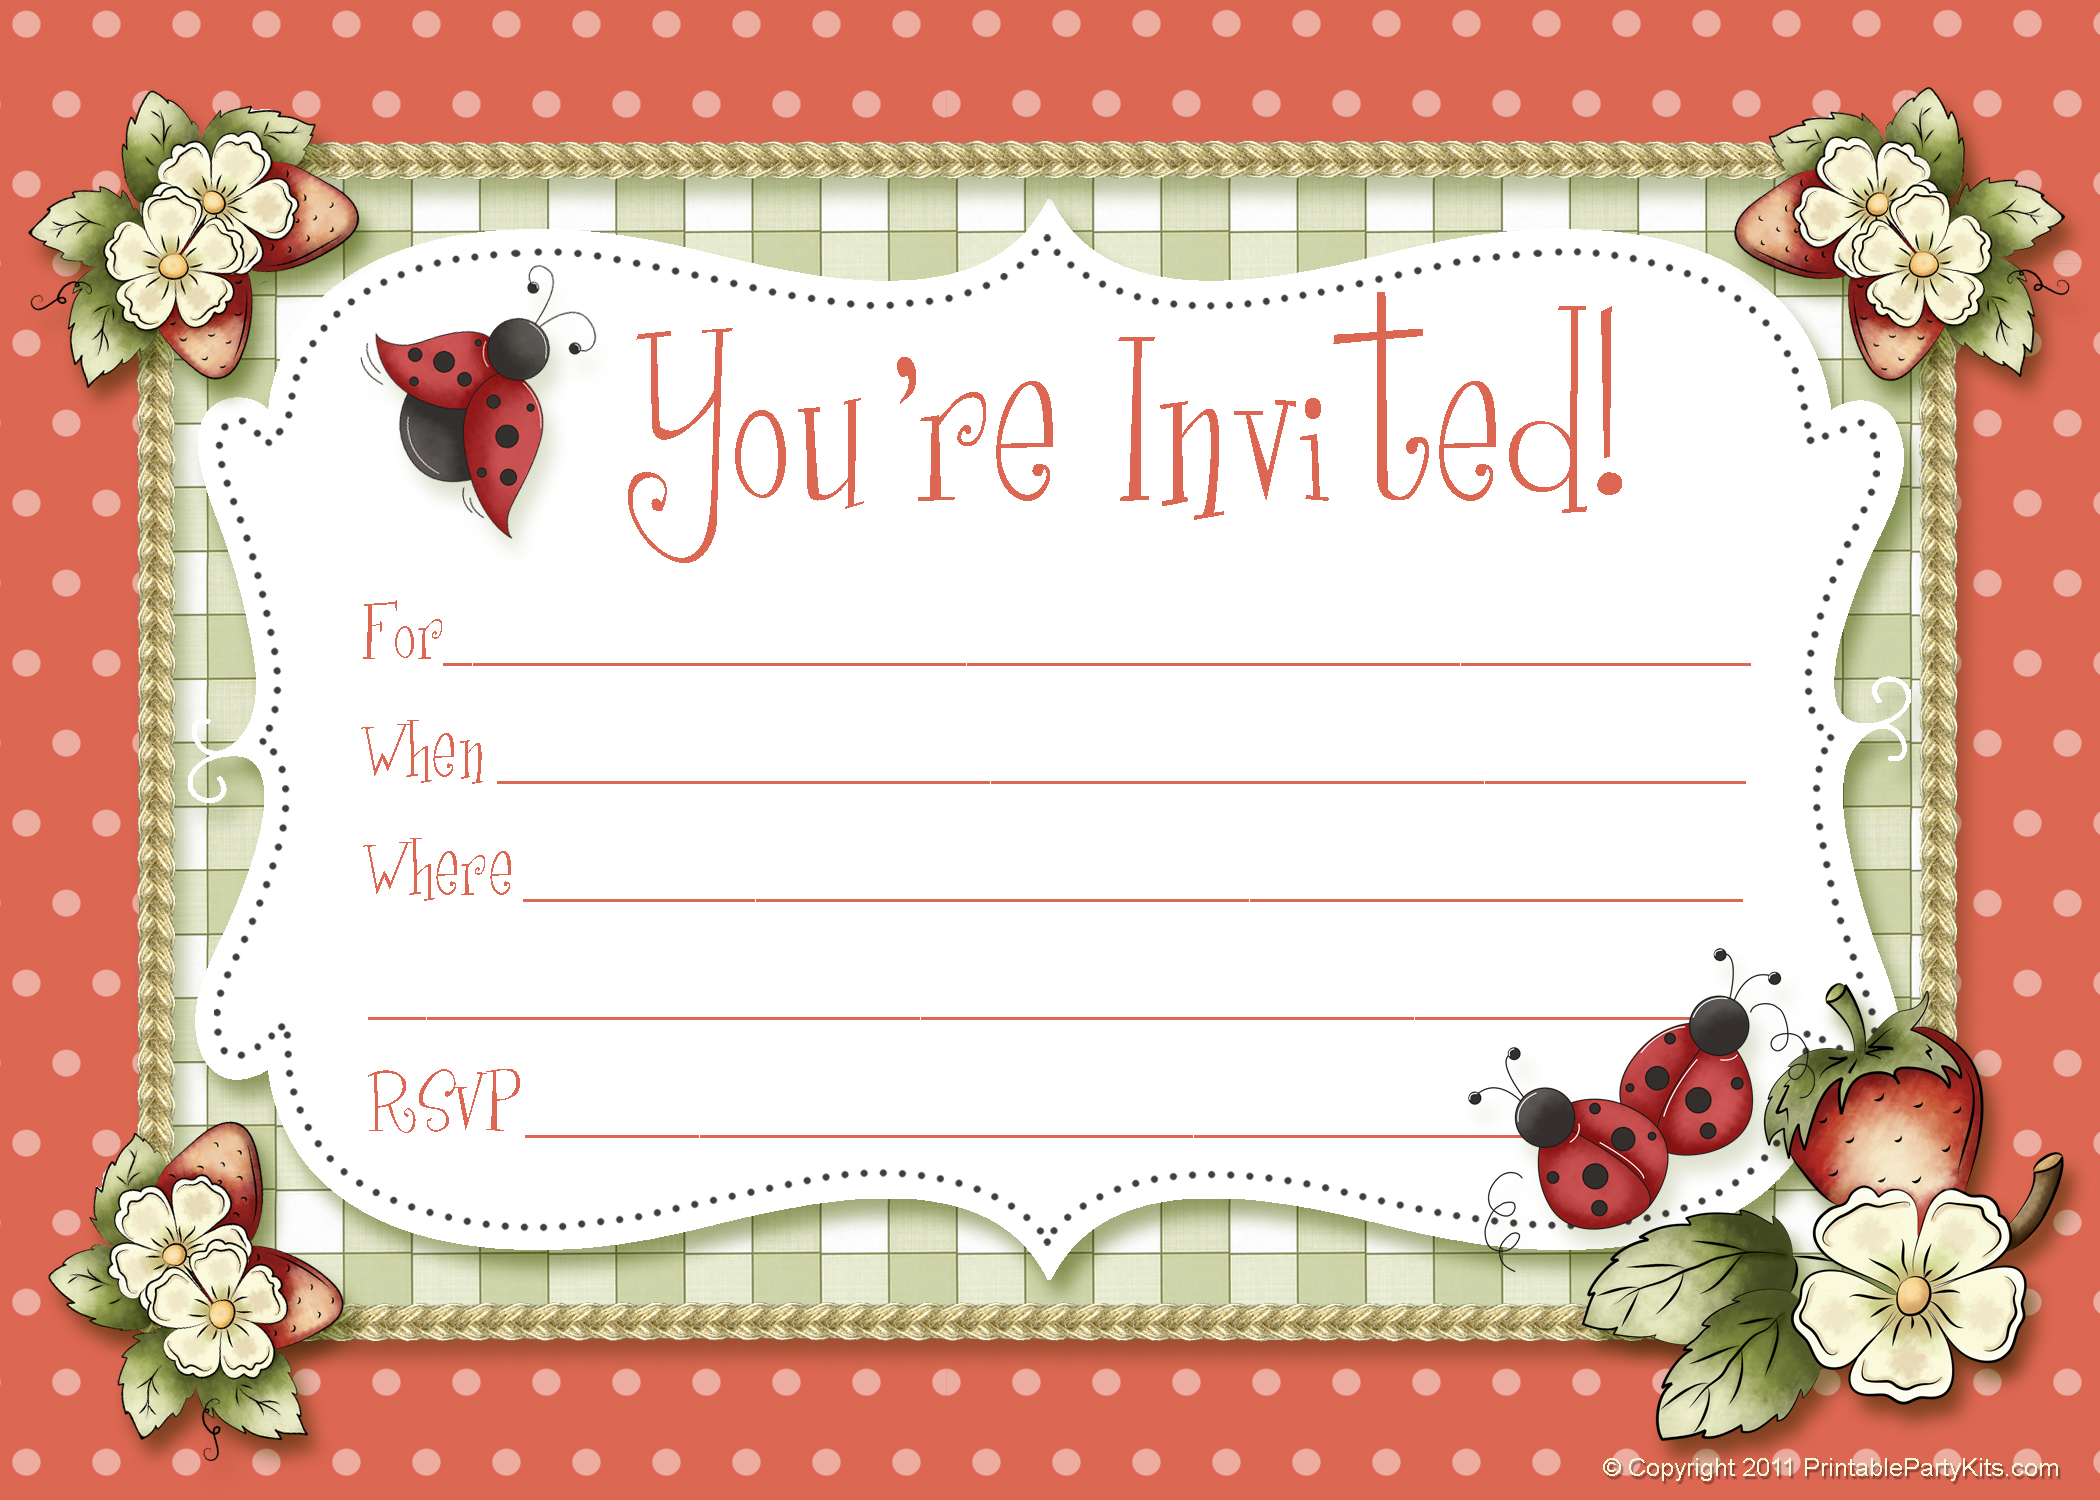 design a birthday invitation card online free ; Stunning-Online-Birthday-Invitations-To-Make-Birthday-Invites